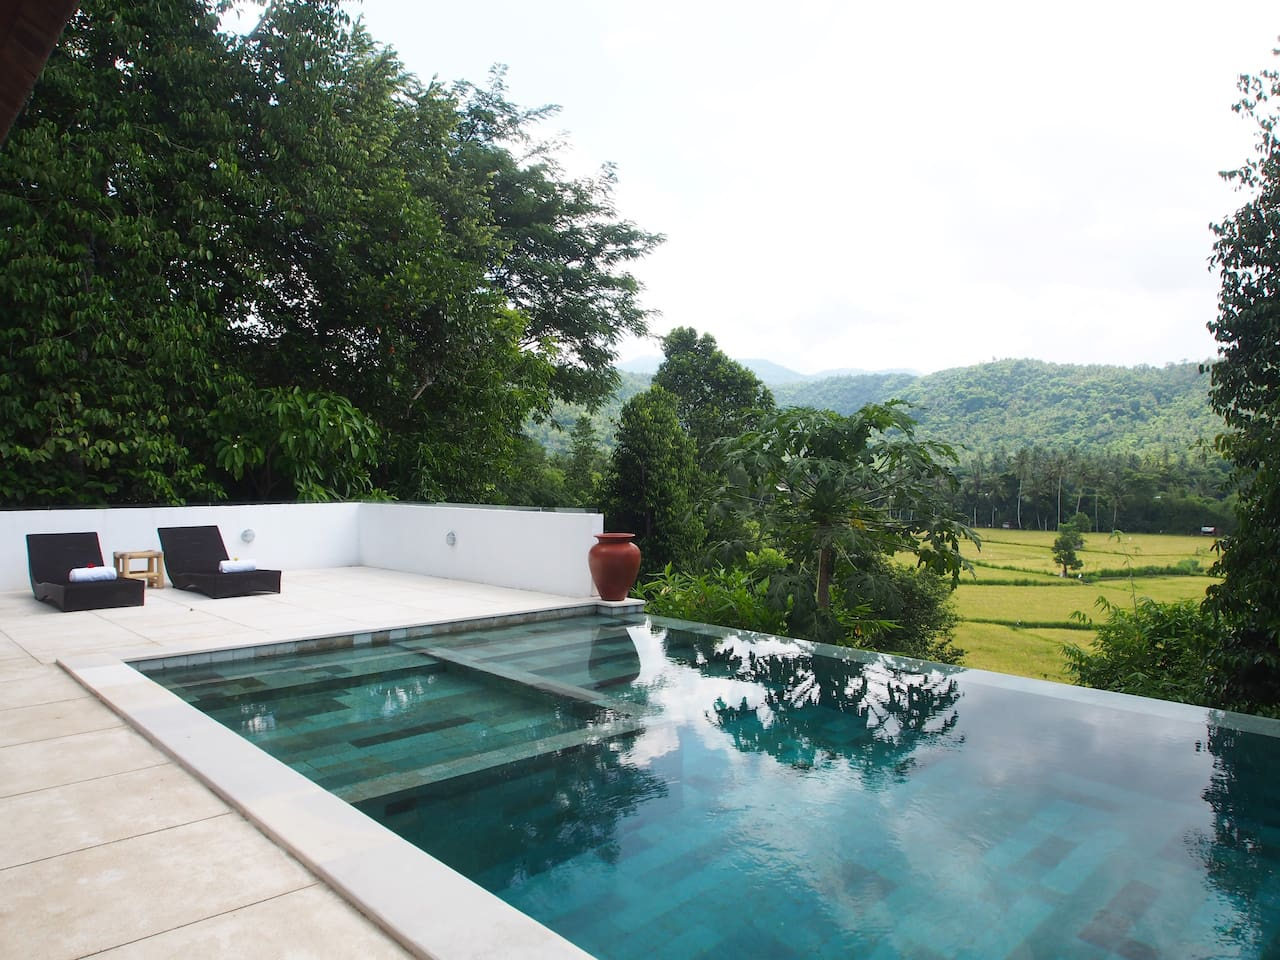 Pool and pooldeck